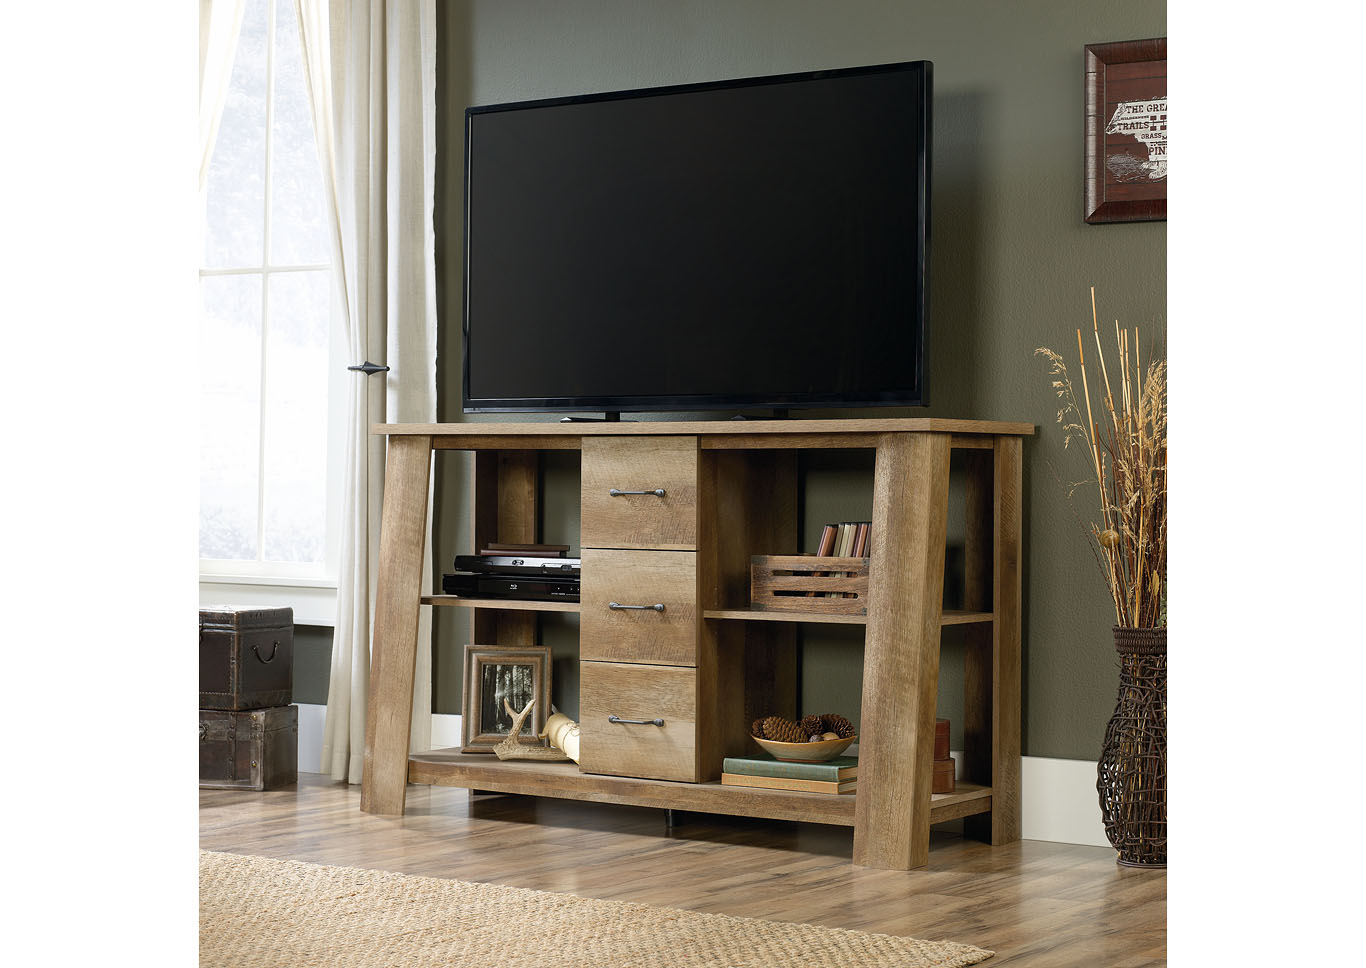 Boone Mountain Craftsman Oak Credenza,Sauder